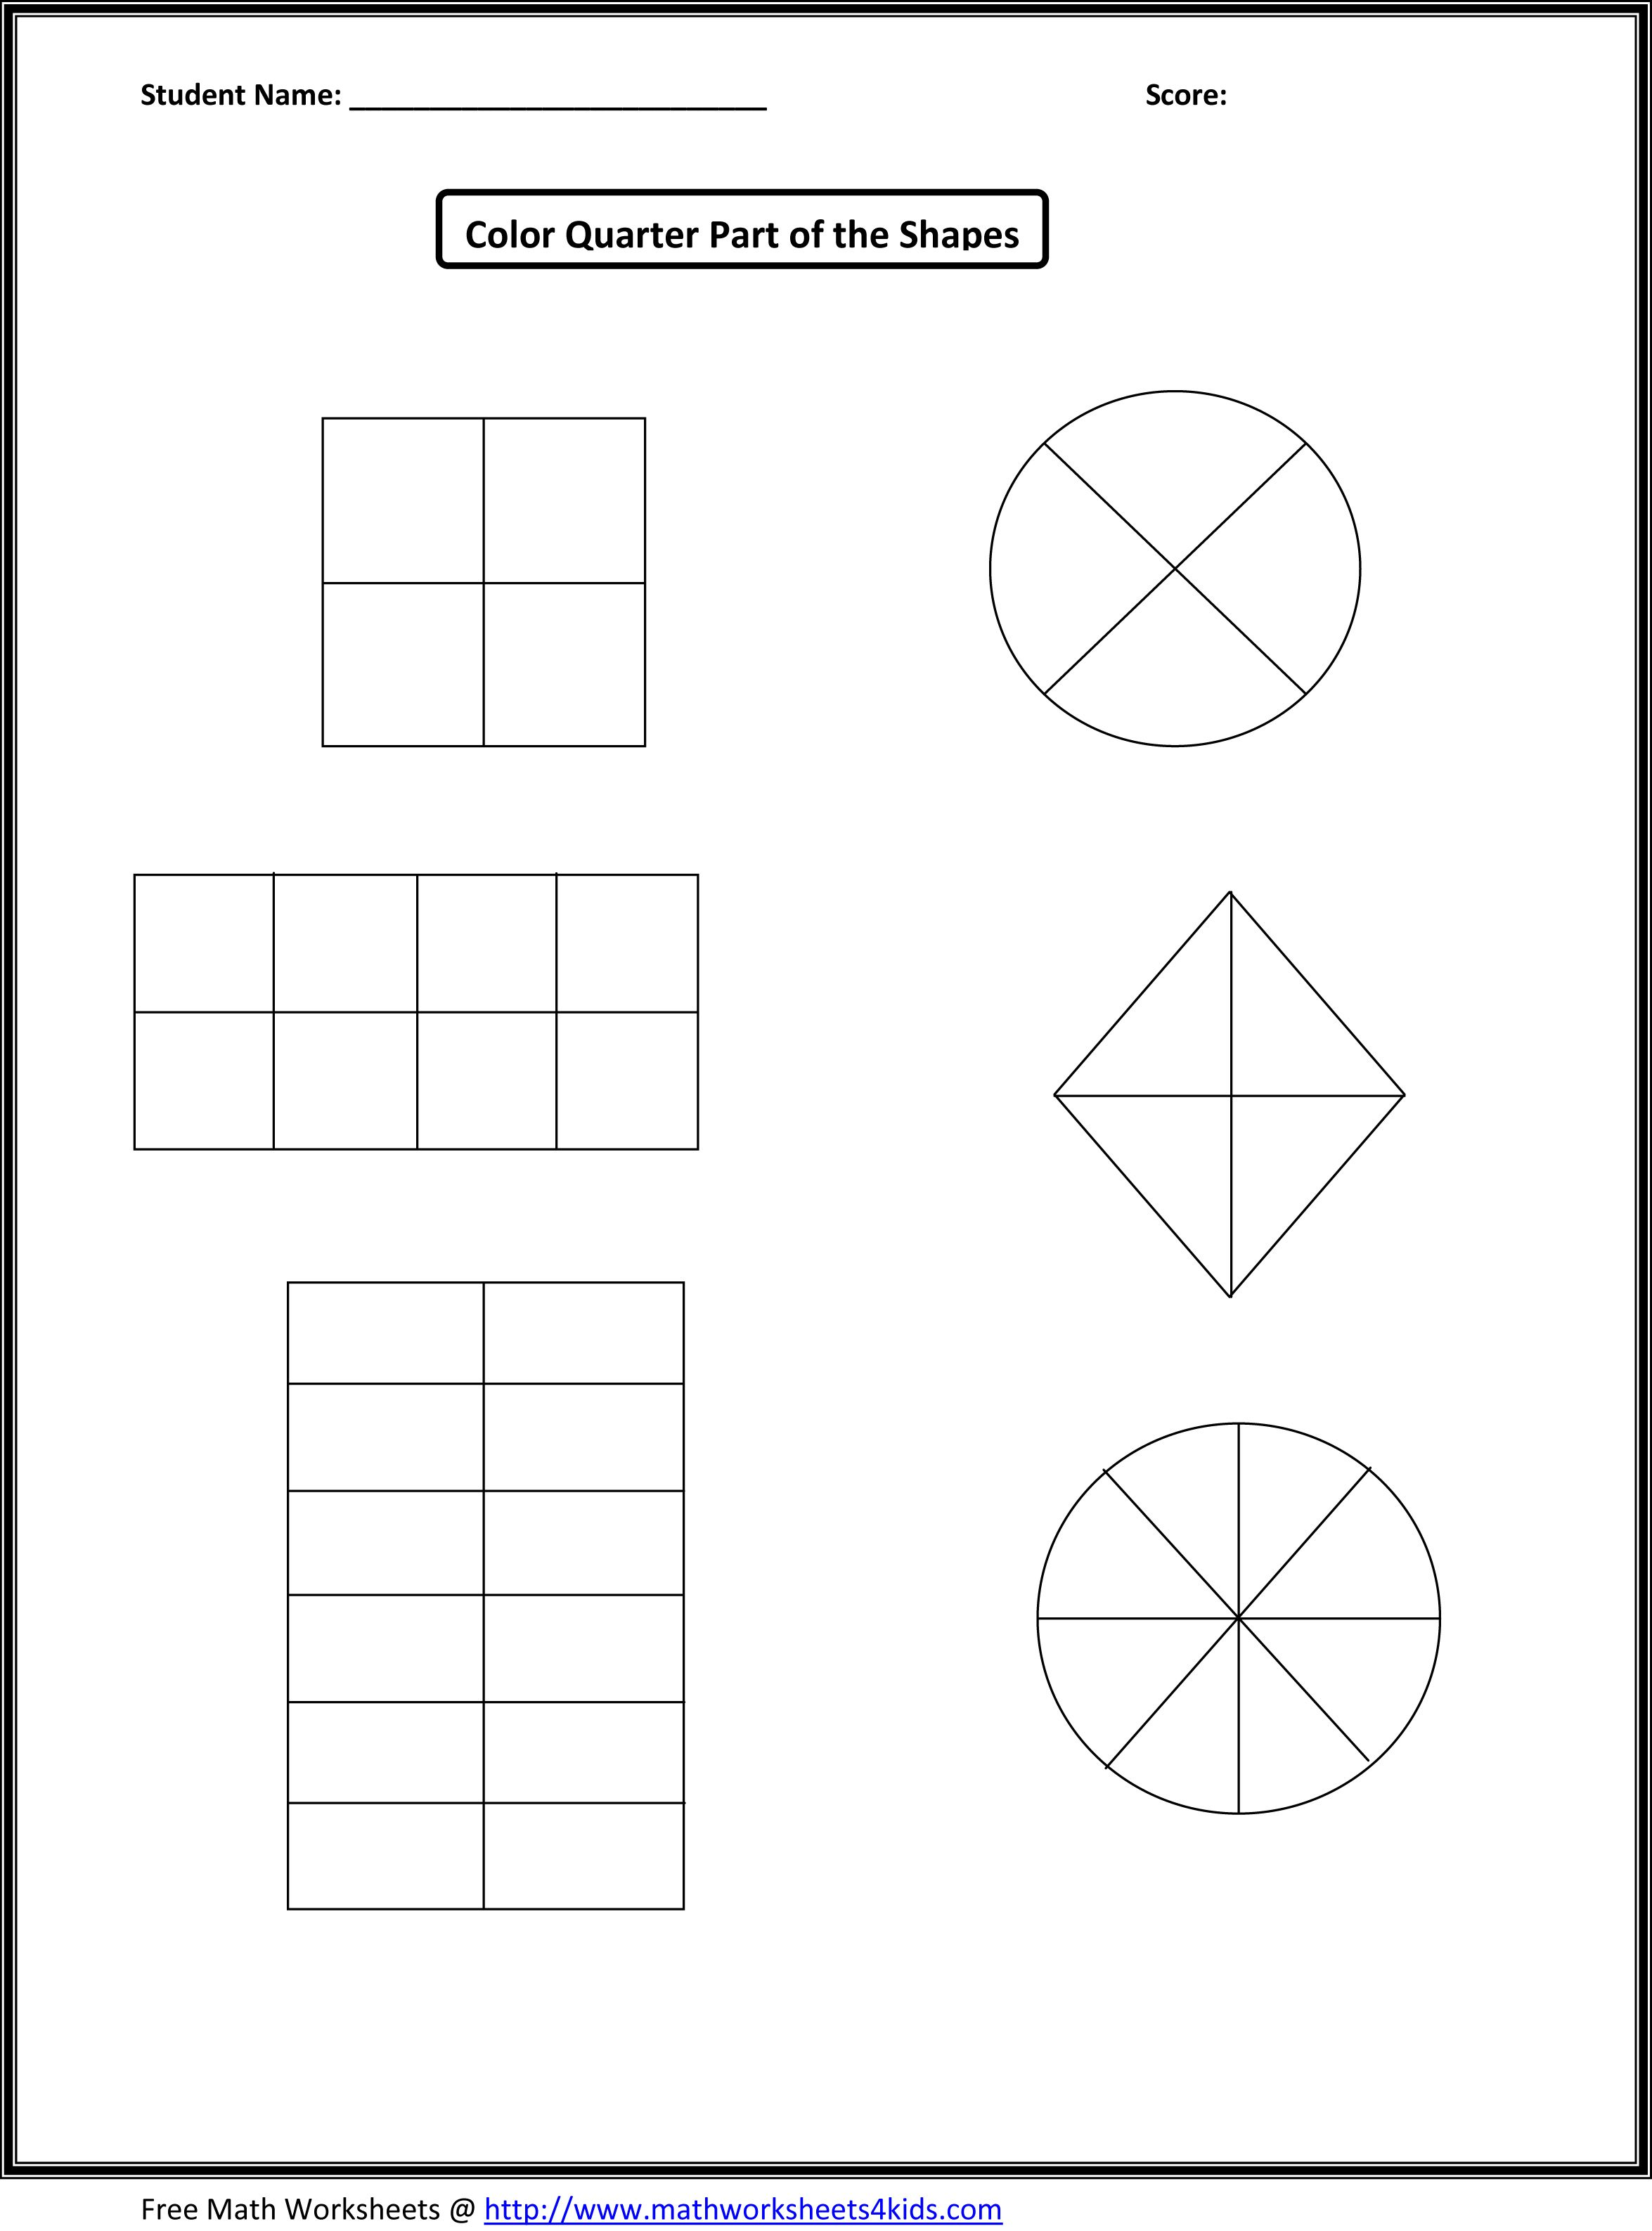 First Grade Math Worksheets Fractions Worksheets Shapes Worksheets Free Math Worksheets